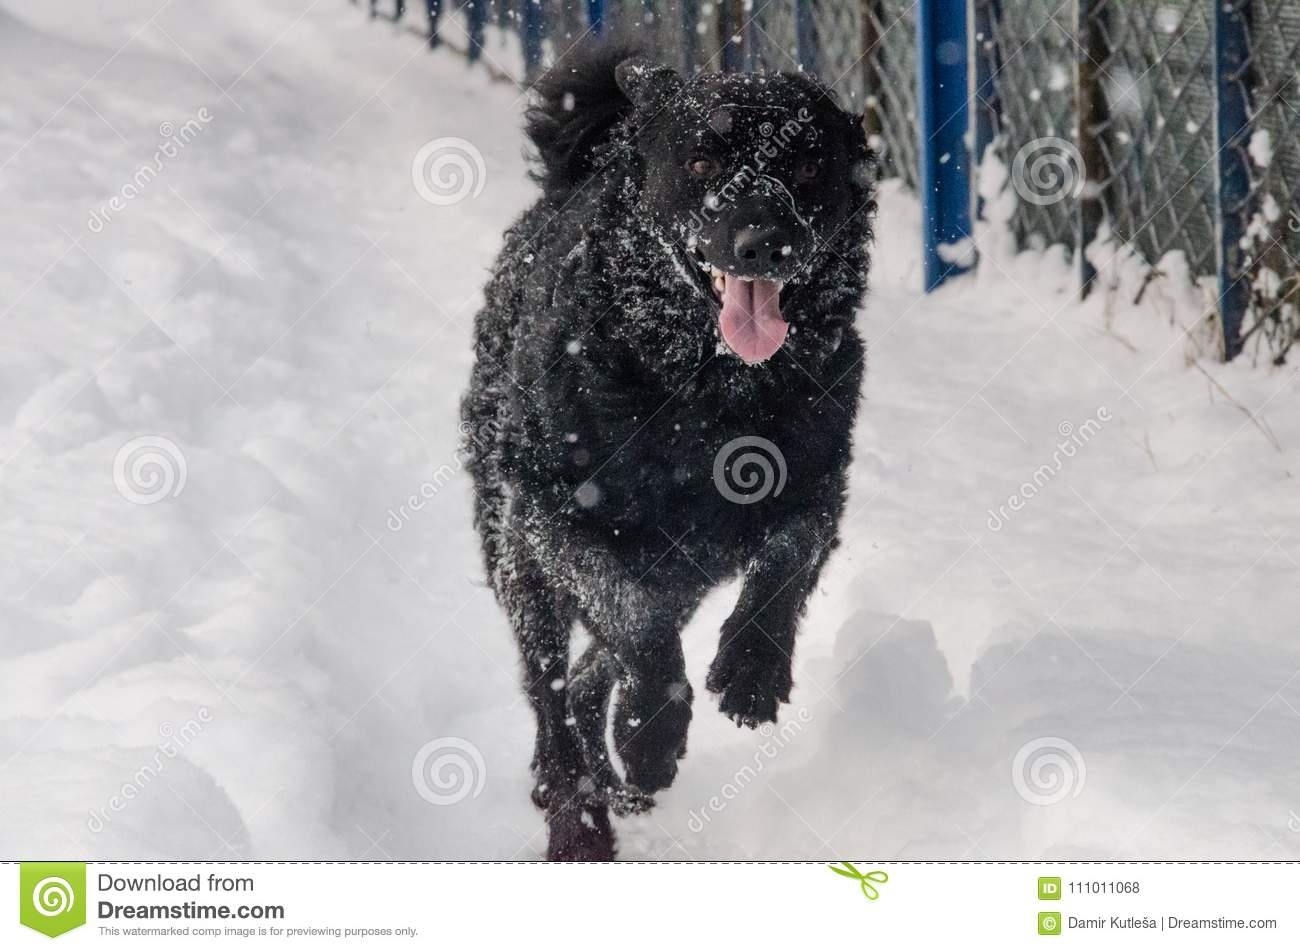 A black dog in the snow